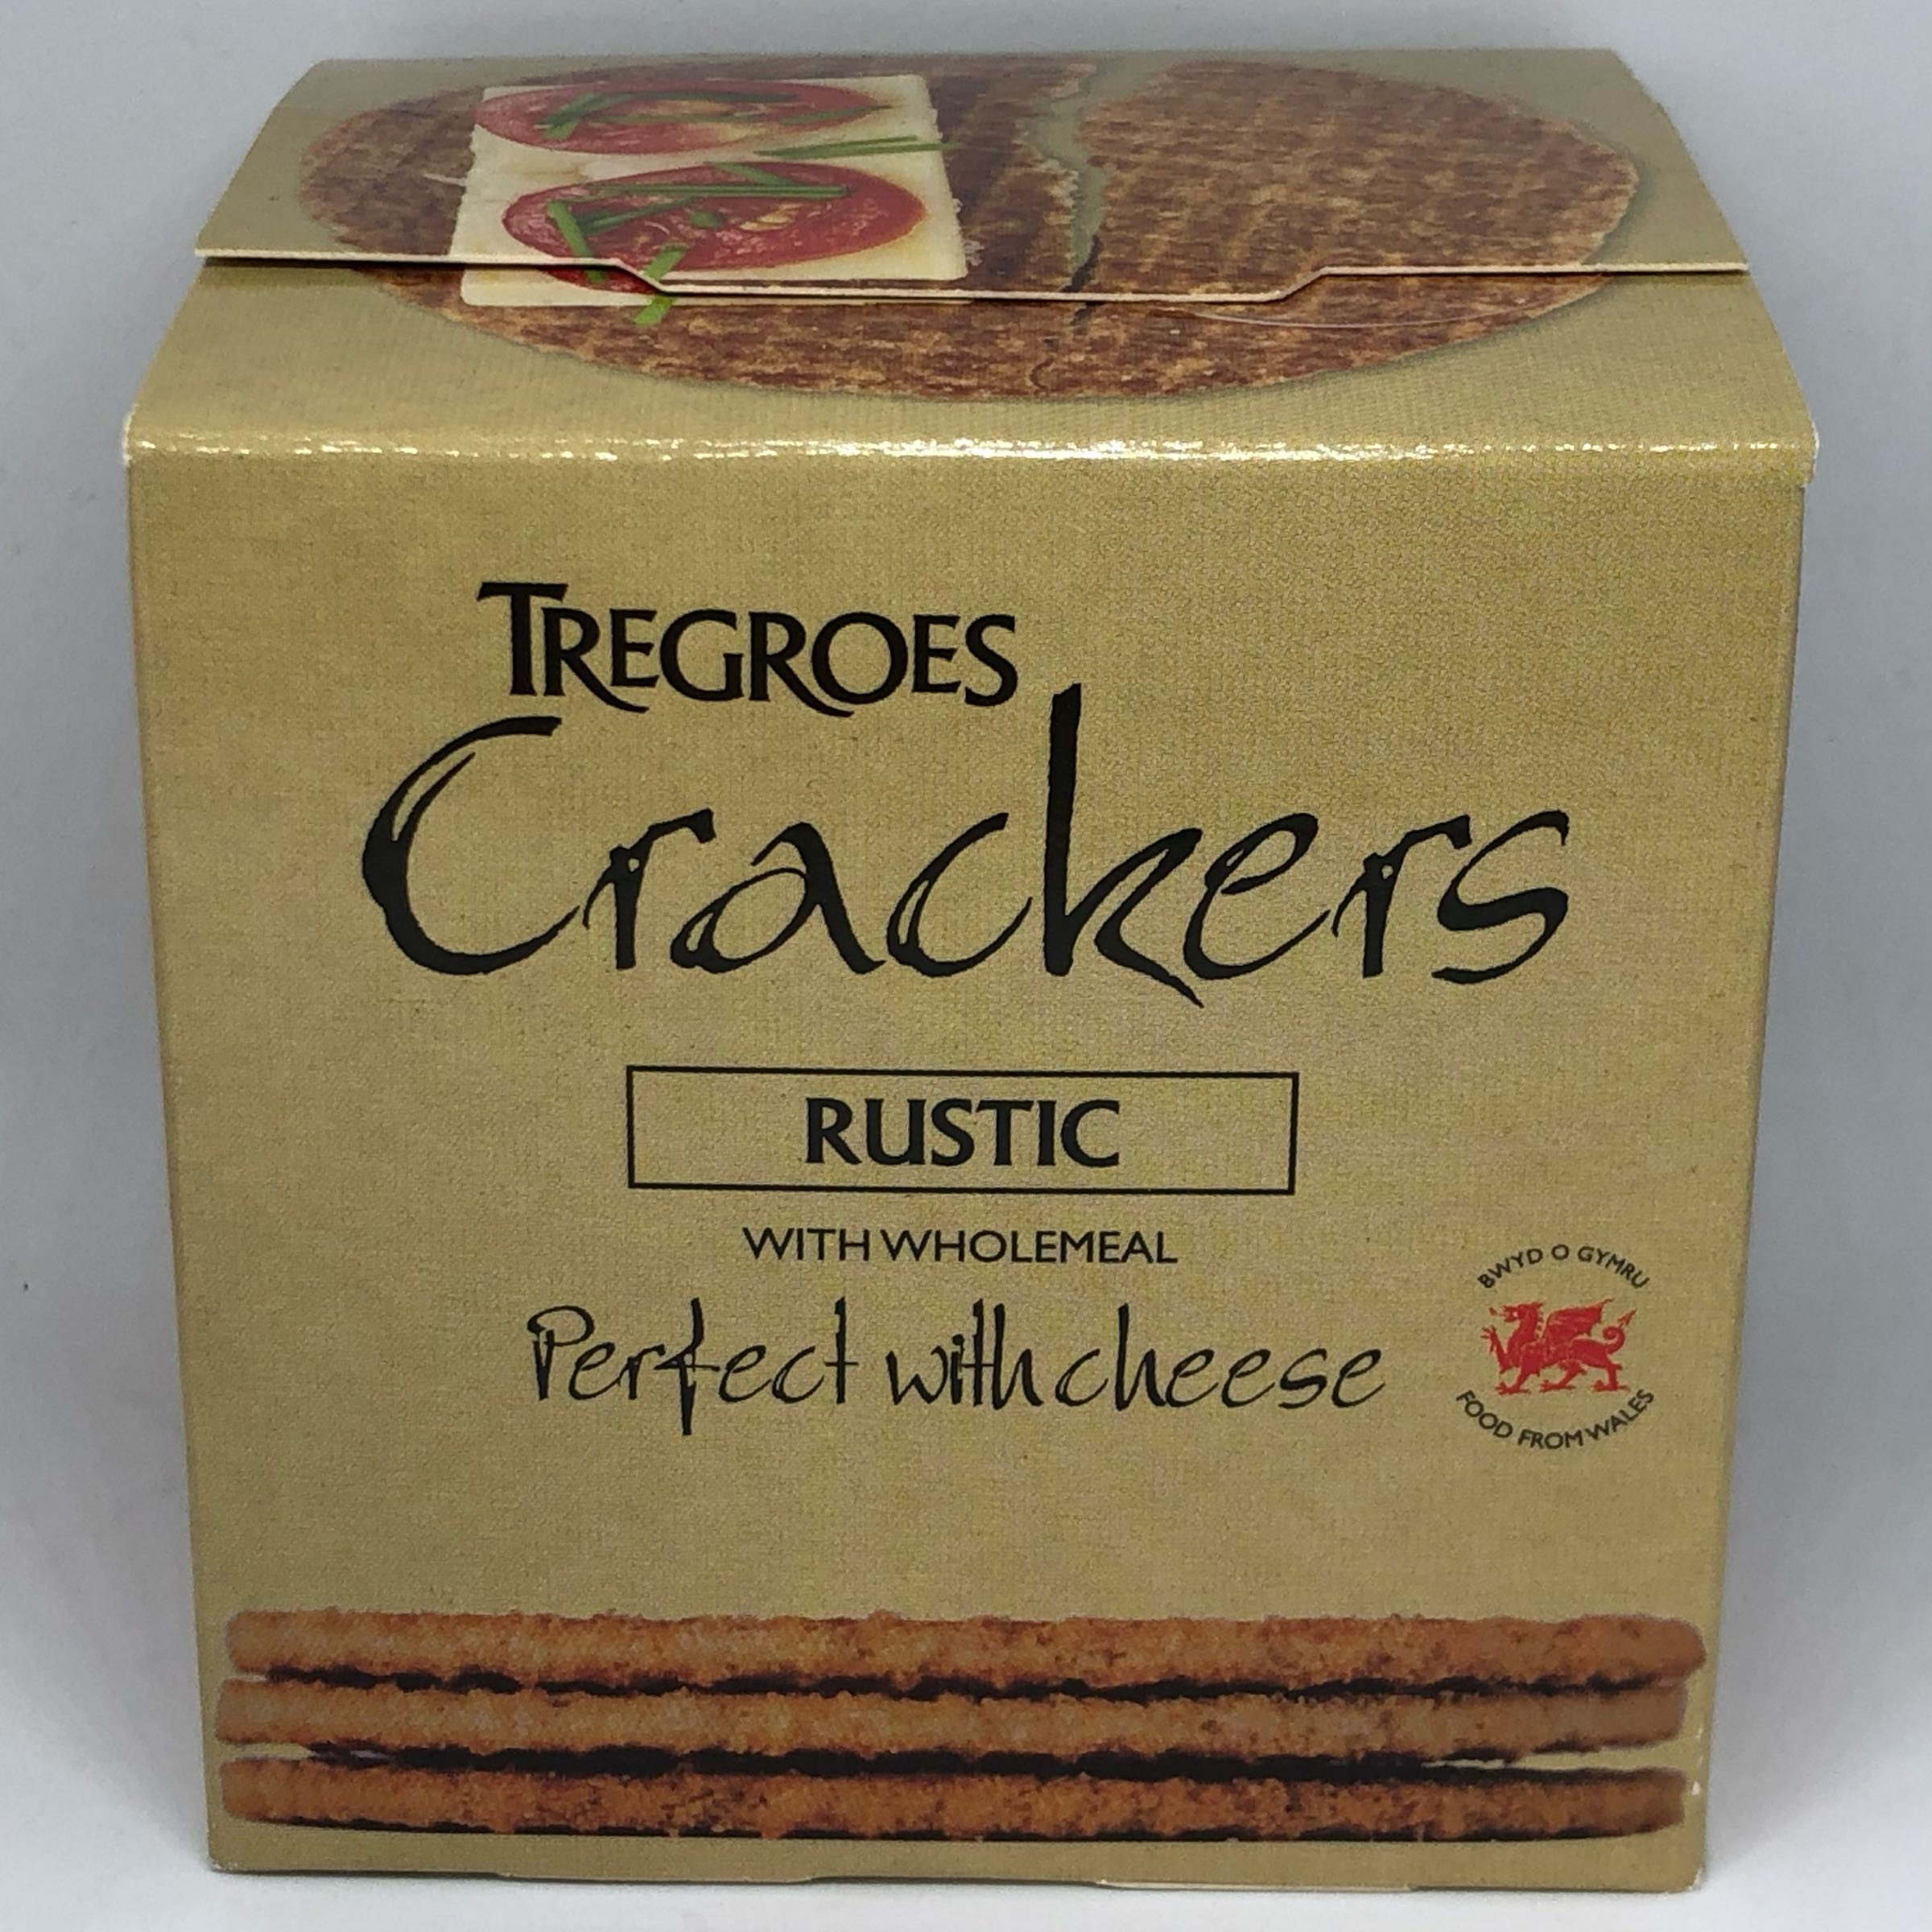 Tregroes Crackers